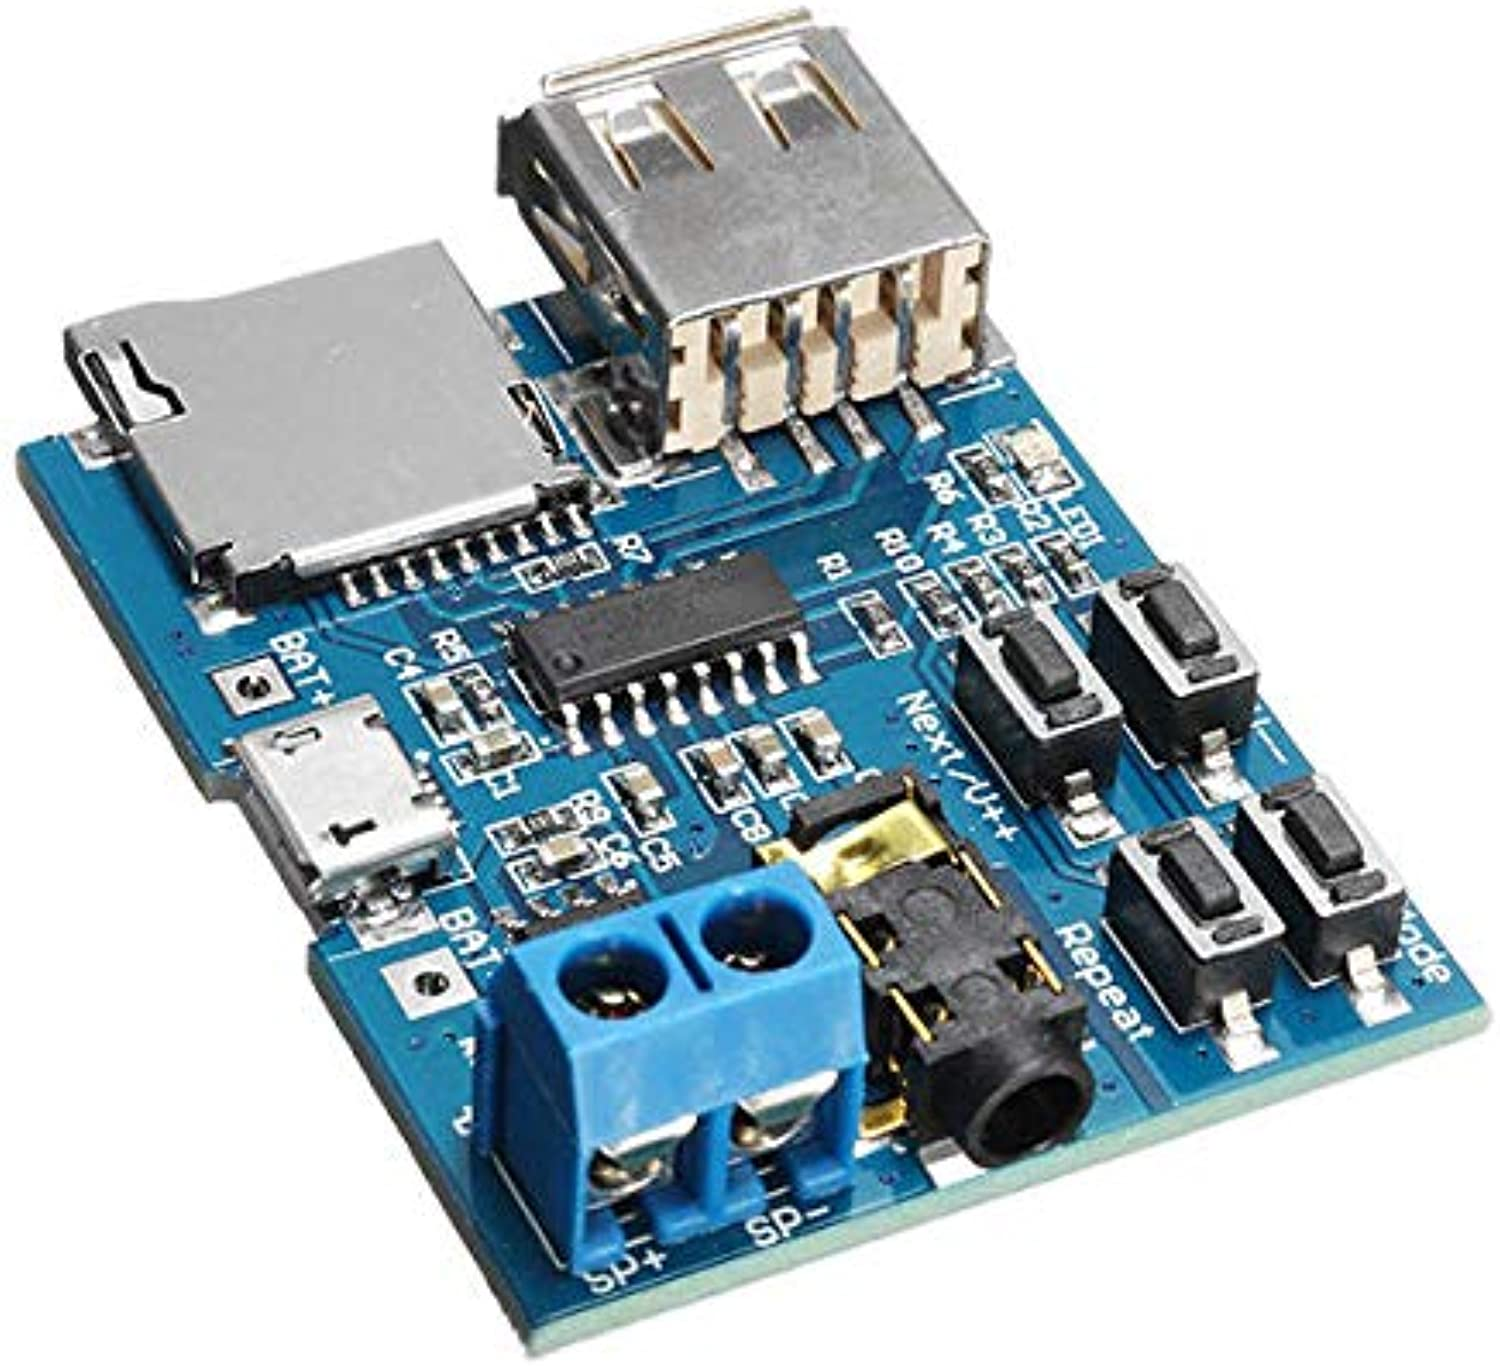 10Pcs MP3 Lossless Decoder Board with Power Amplifier Module Card Decoding Player  Arduino Compatible SCM & DIY Kits Module Board